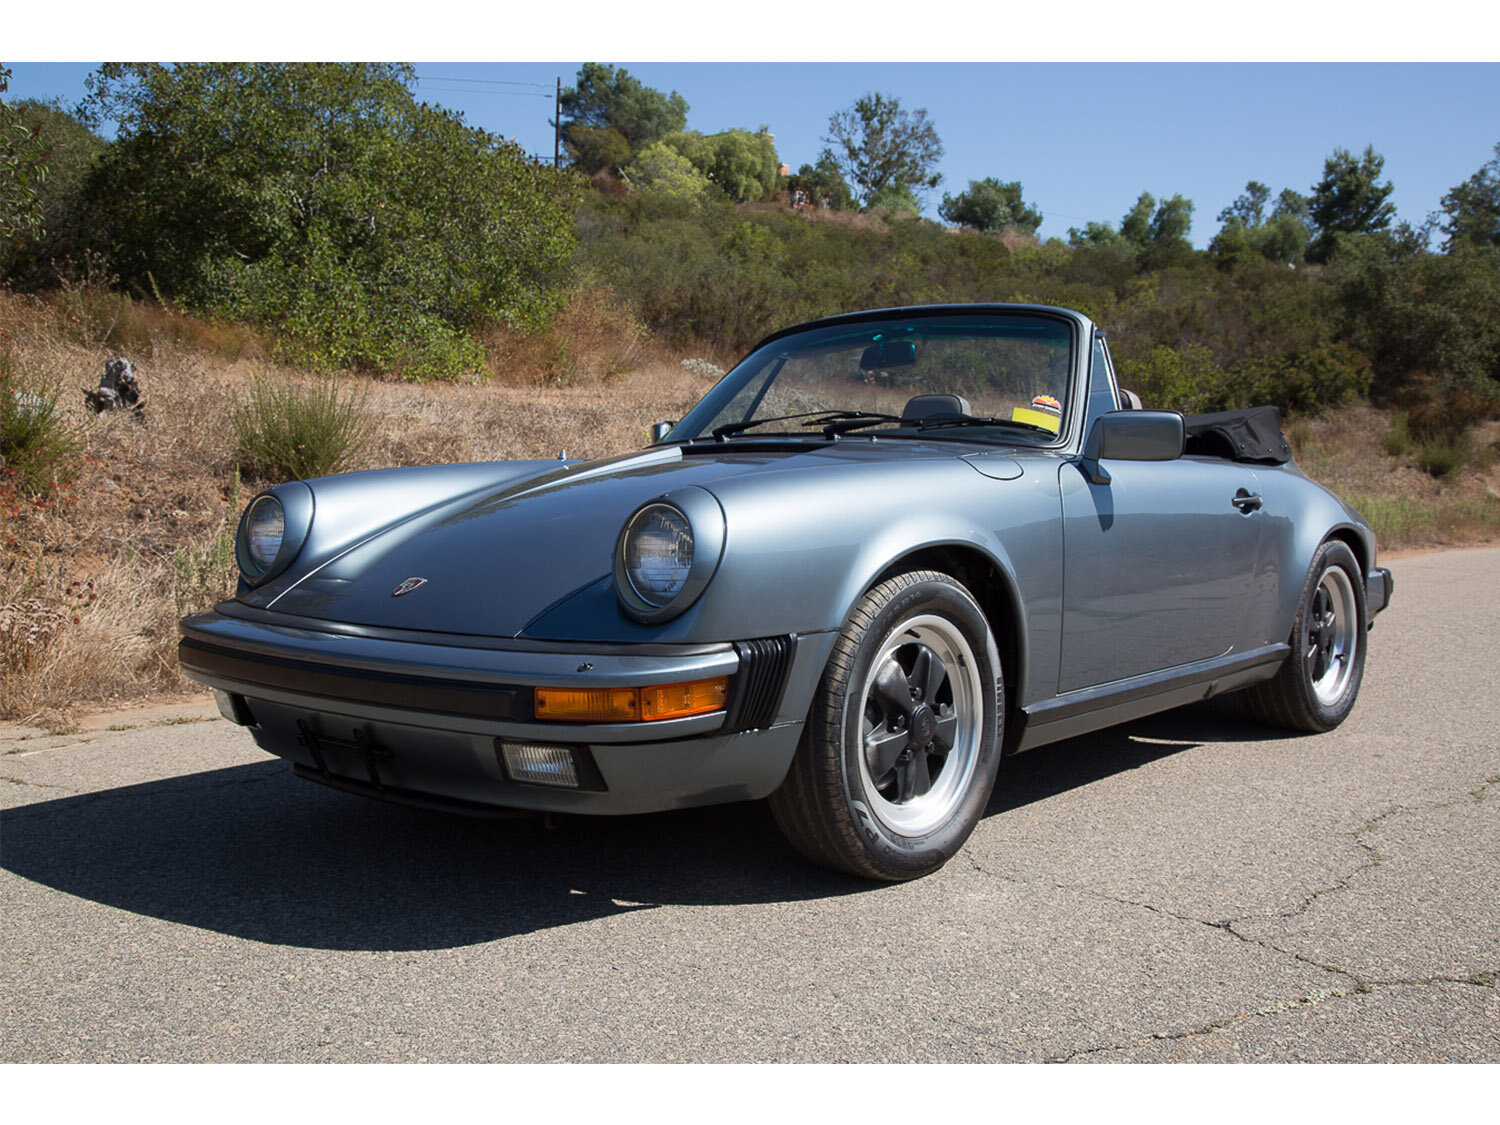 1984-carrera-cabriolet-slate-blue-911-sc-for-sale-makellos-classics_0001s_0000s_0034_1B7A6589.jpg